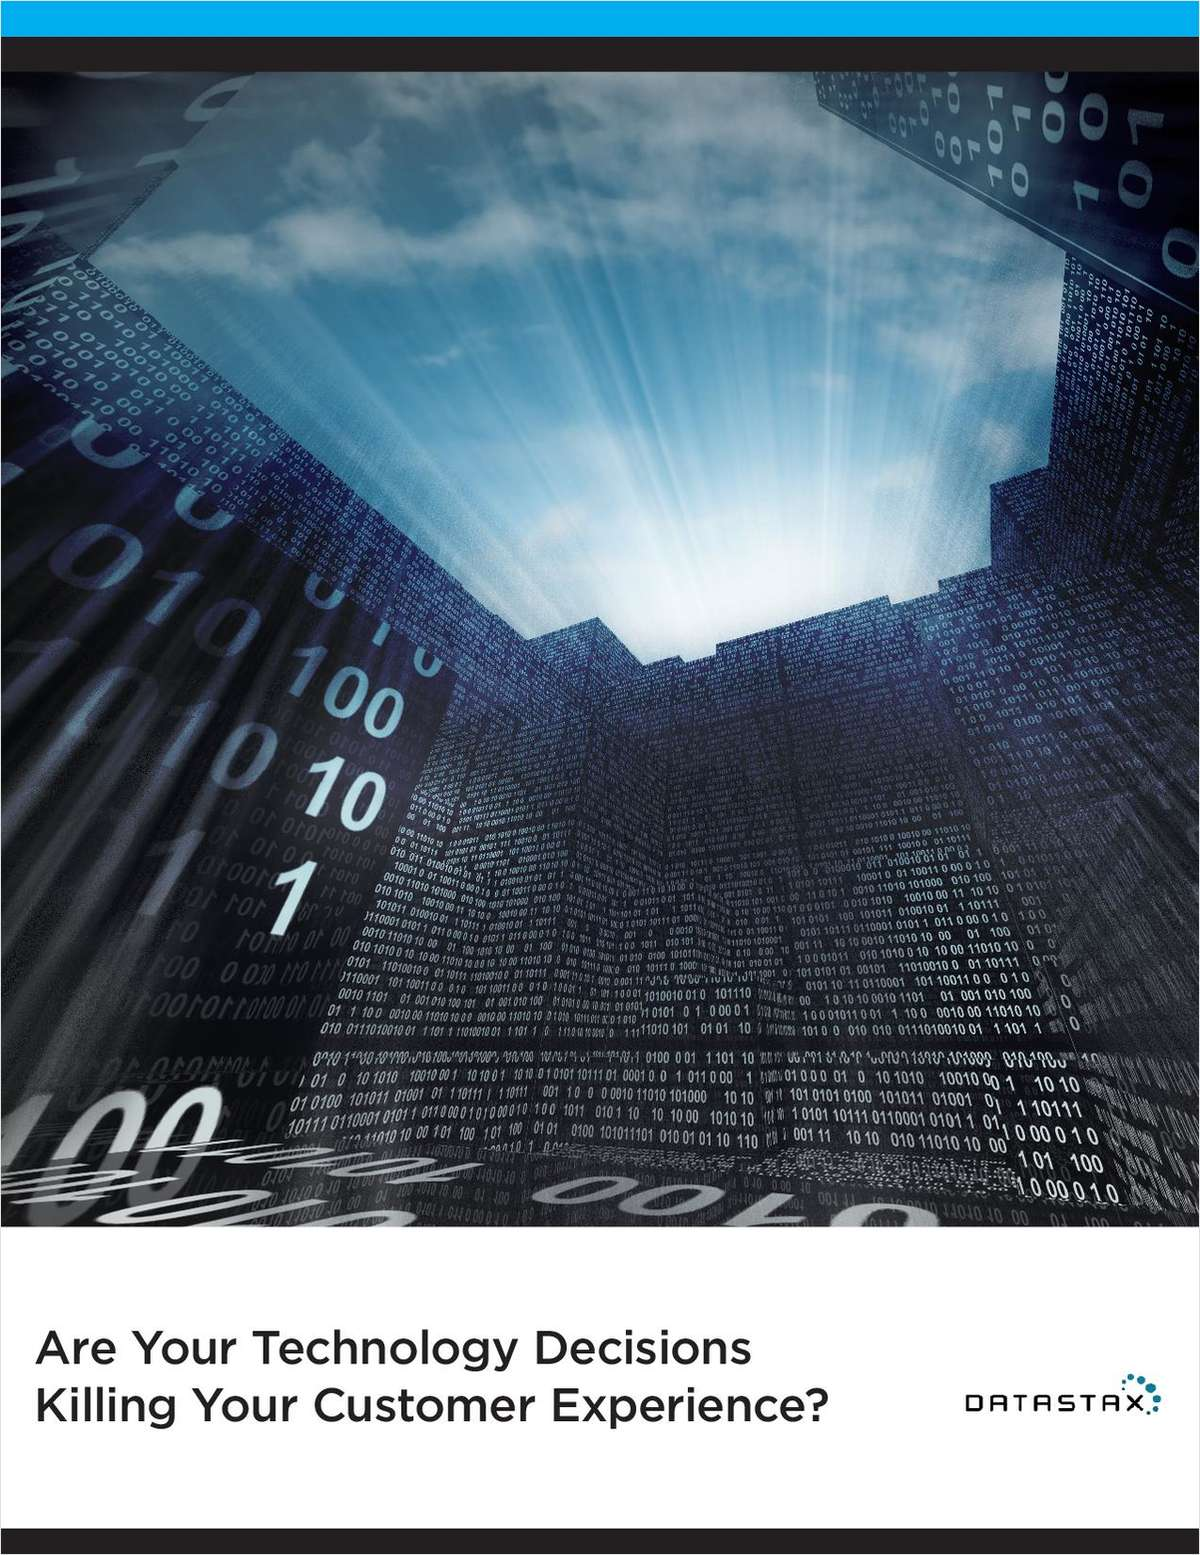 Are Your Technology Decisions Killing Your Customer Experience?